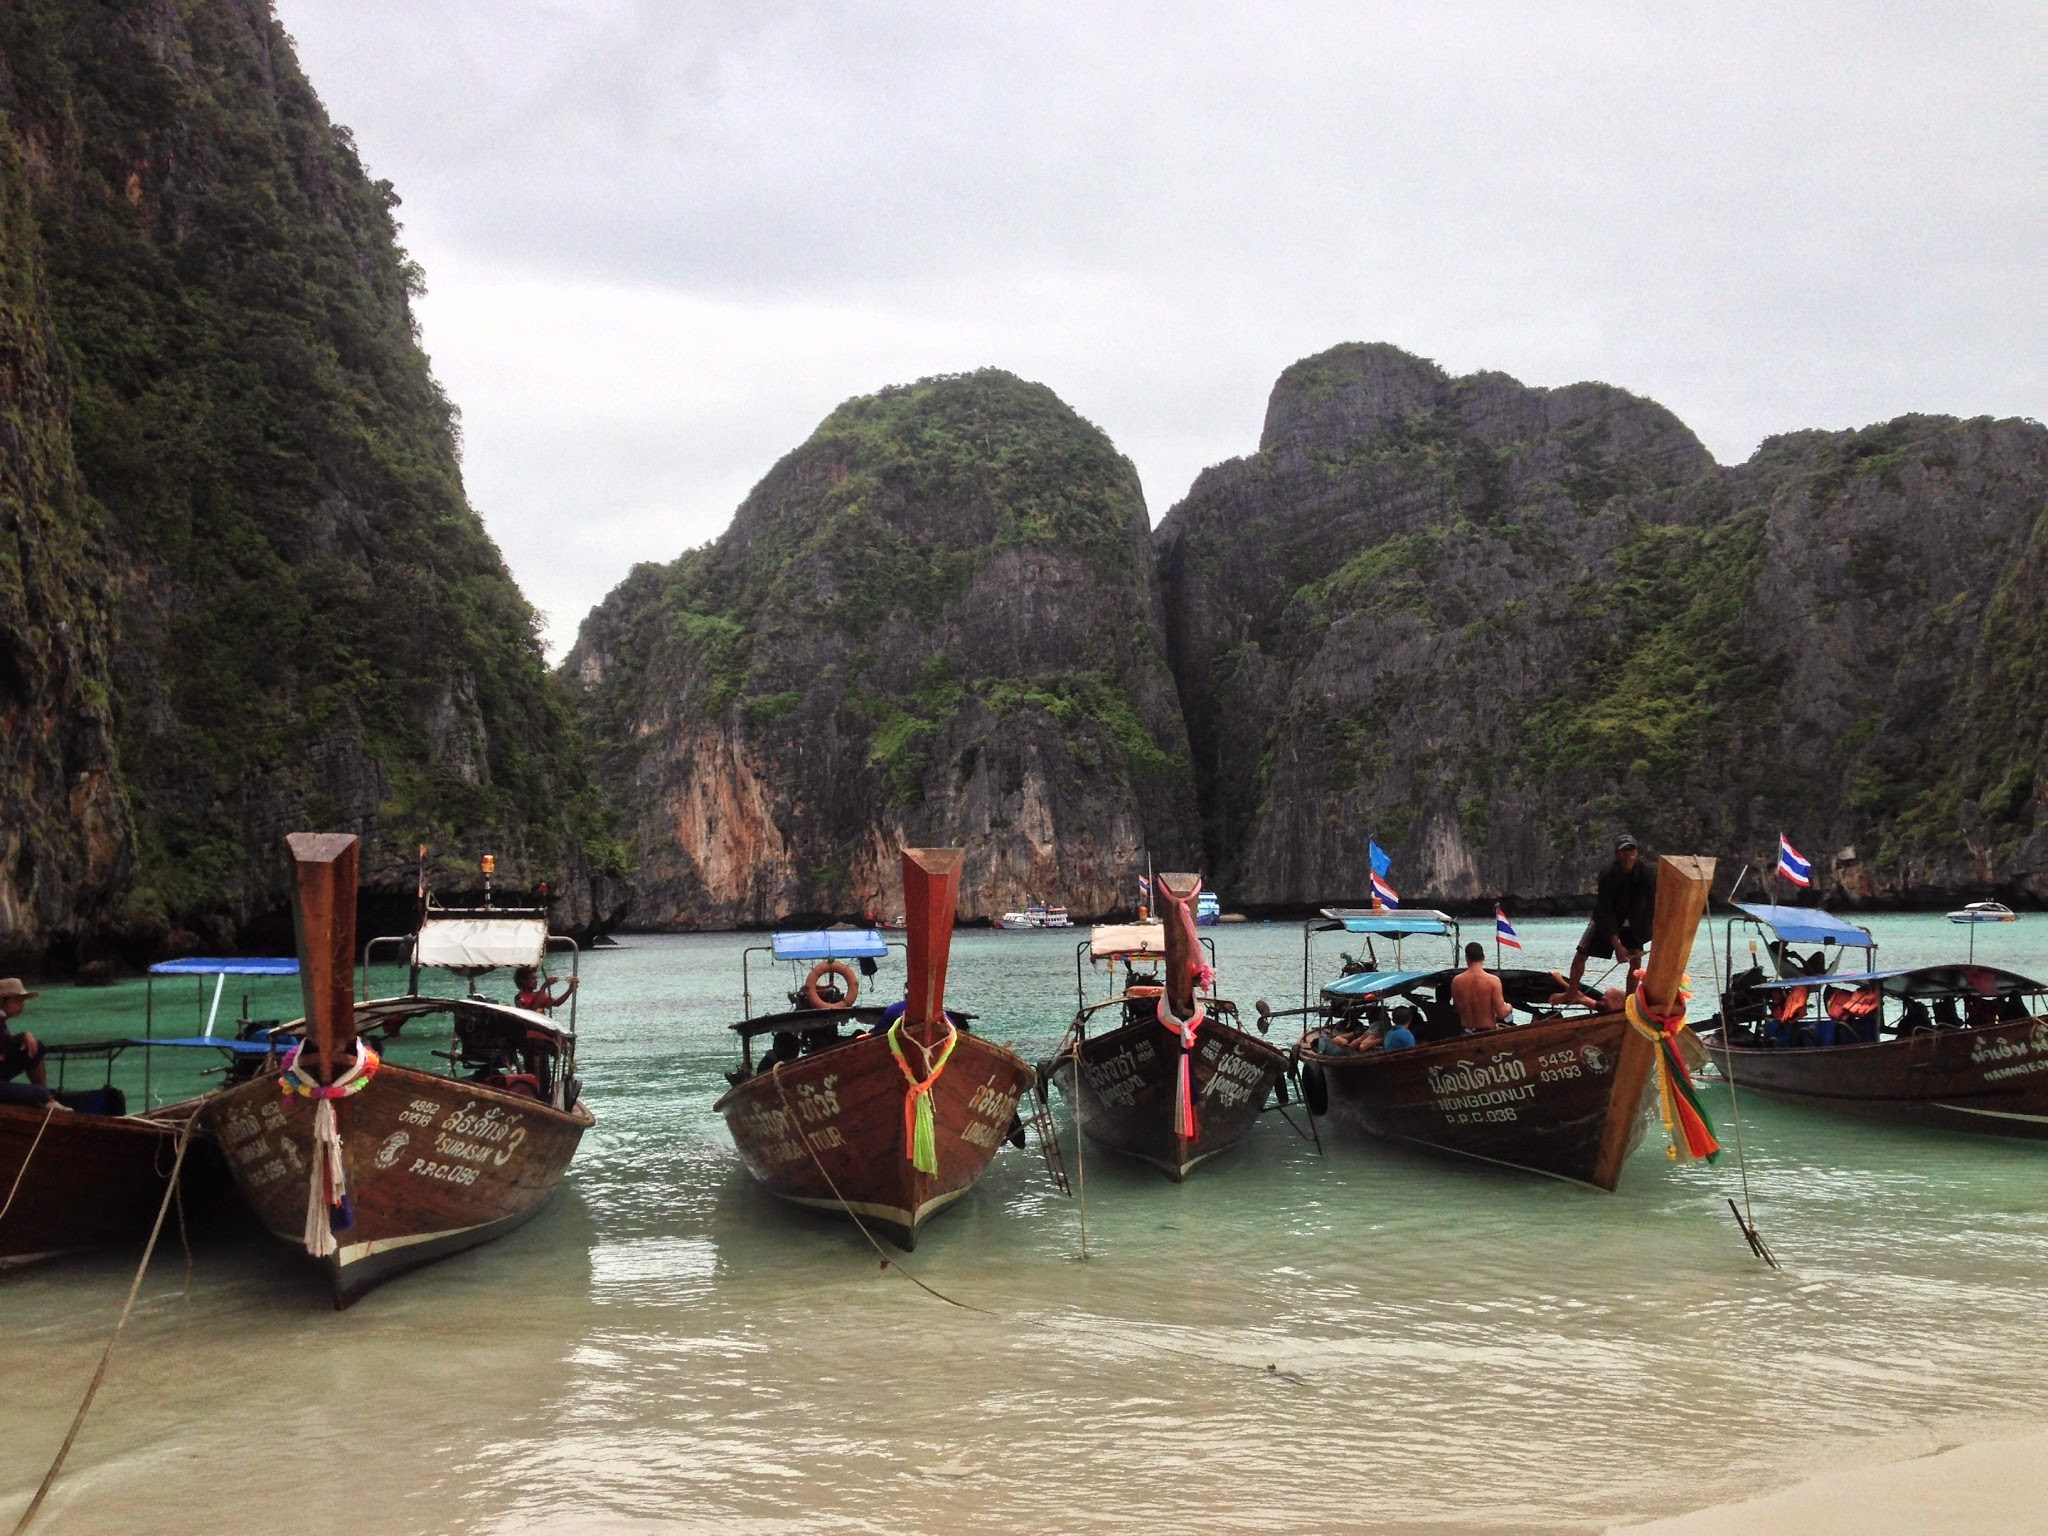 maya bay, koh phi phi, thailand, travels, backpacking, travelling, beach, beaches, the beach, film locations, boats, sightseeing,